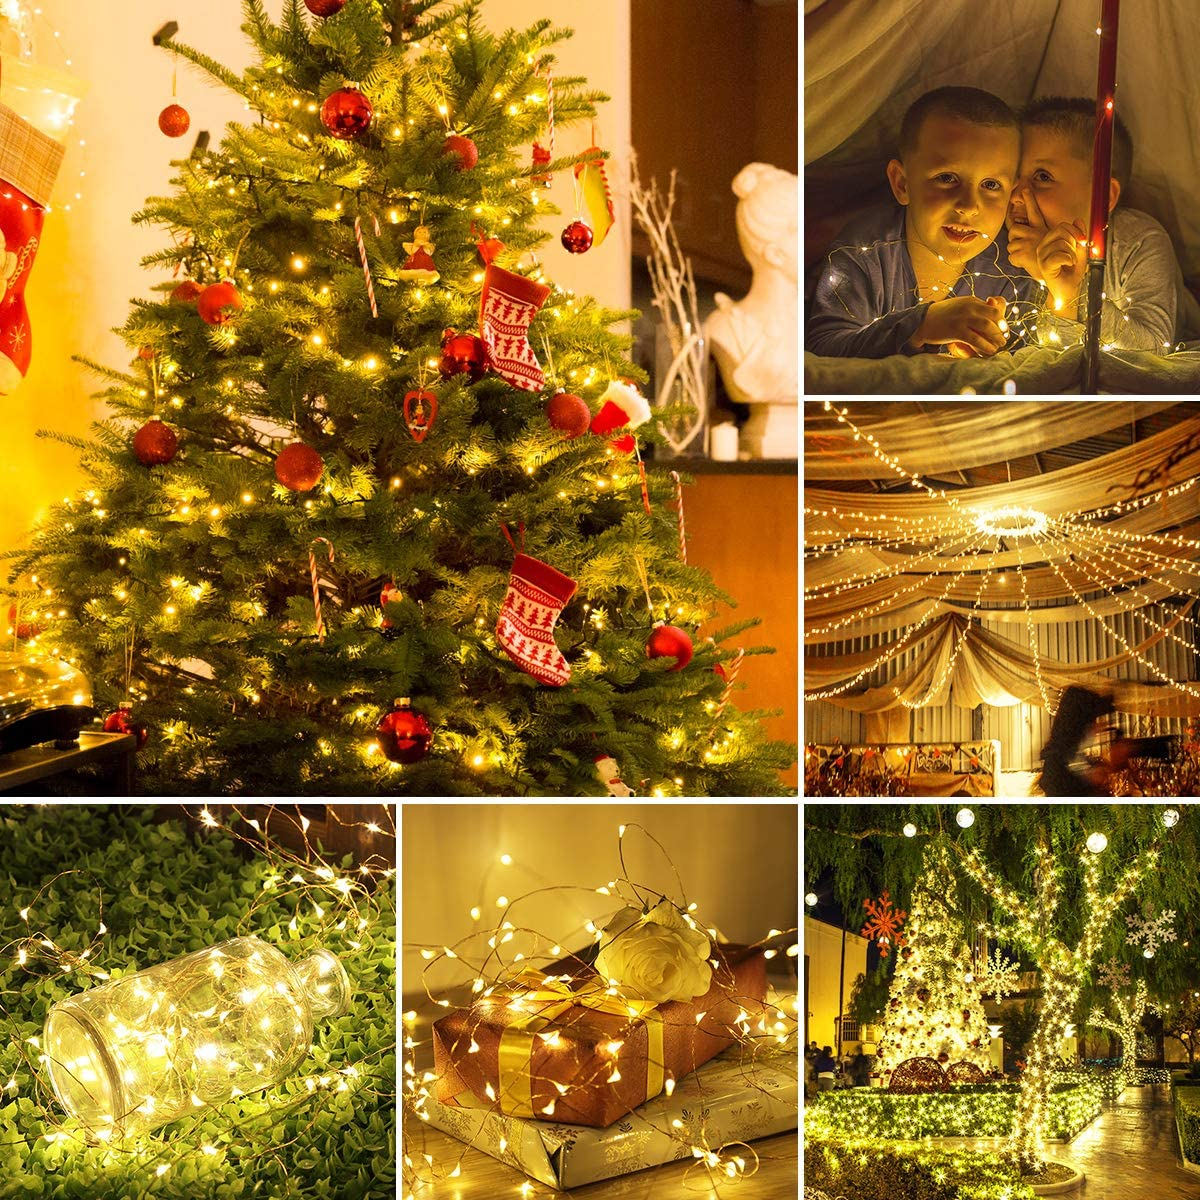 H54f2ff65da0a49a7998aacd5ce52c15fr - Led Fairy Lights Copper Wire String 1/2/5/10M Holiday Outdoor Lamp Garland Luces For Christmas Tree Wedding Party Decoration